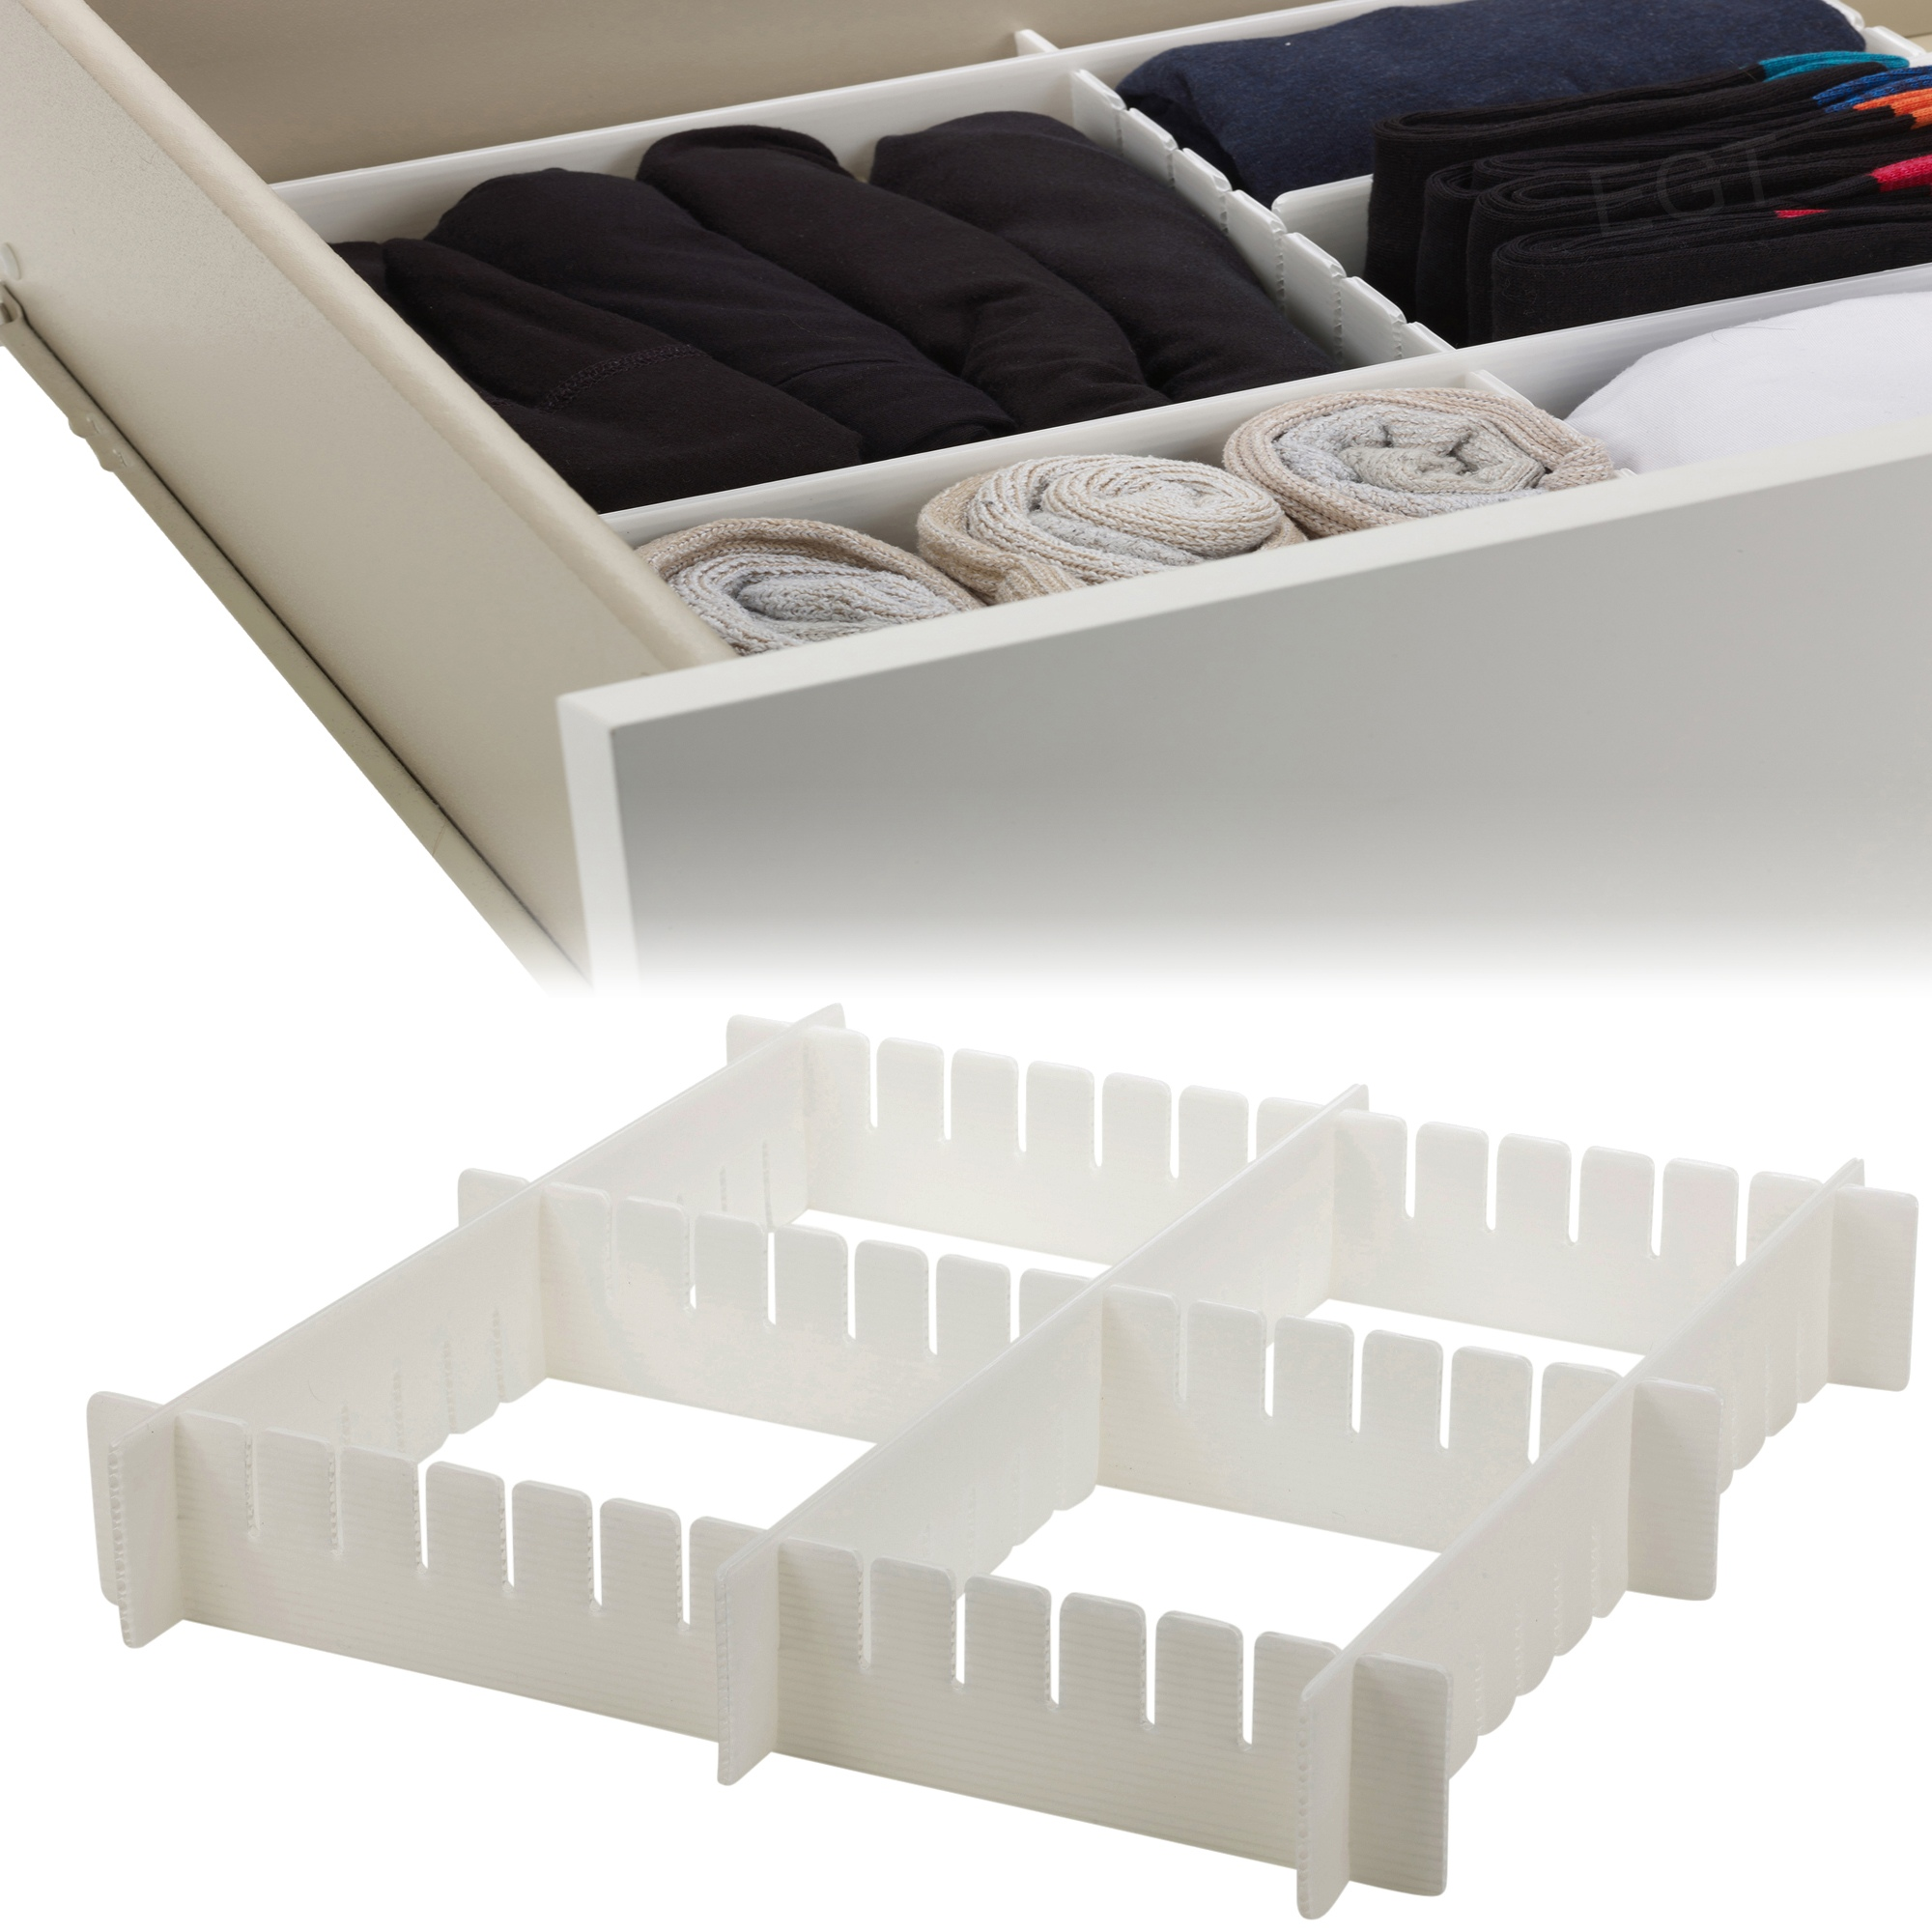 drawer organizer many compartments storage kitchen bedroom strong